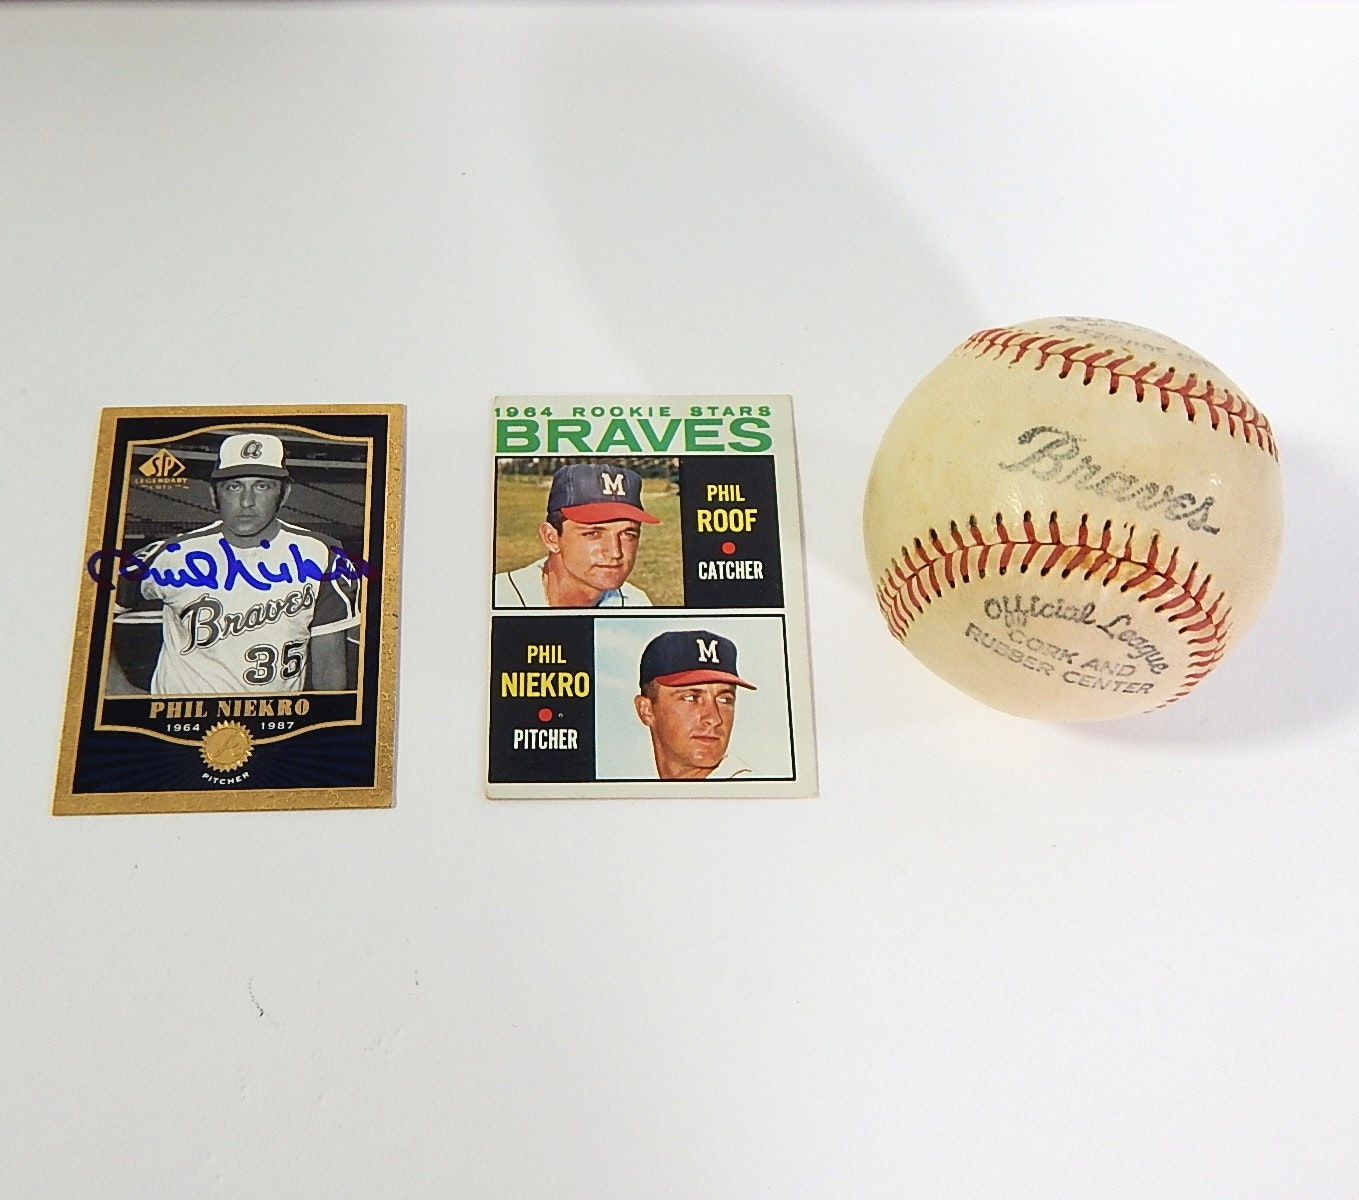 (HOF) Phil Niekro 1964 Baseball Rookie Card, Signed Card, and Braves Baseball